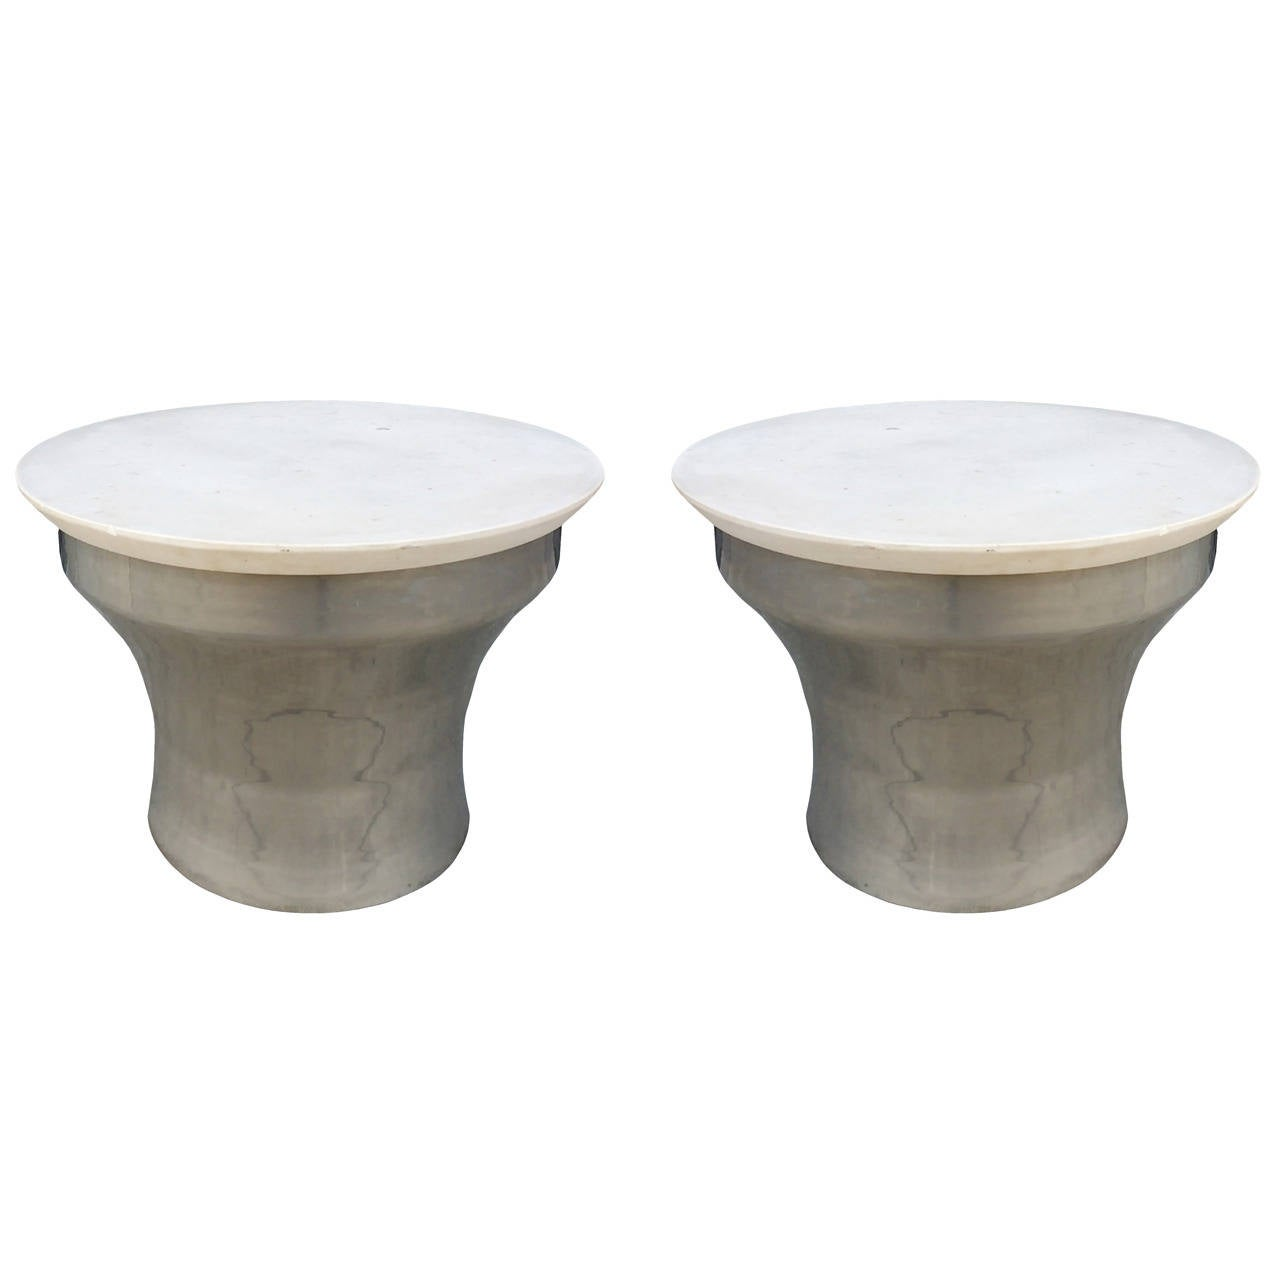 Karl springer rain drum side tables in polished steel for Drum side table